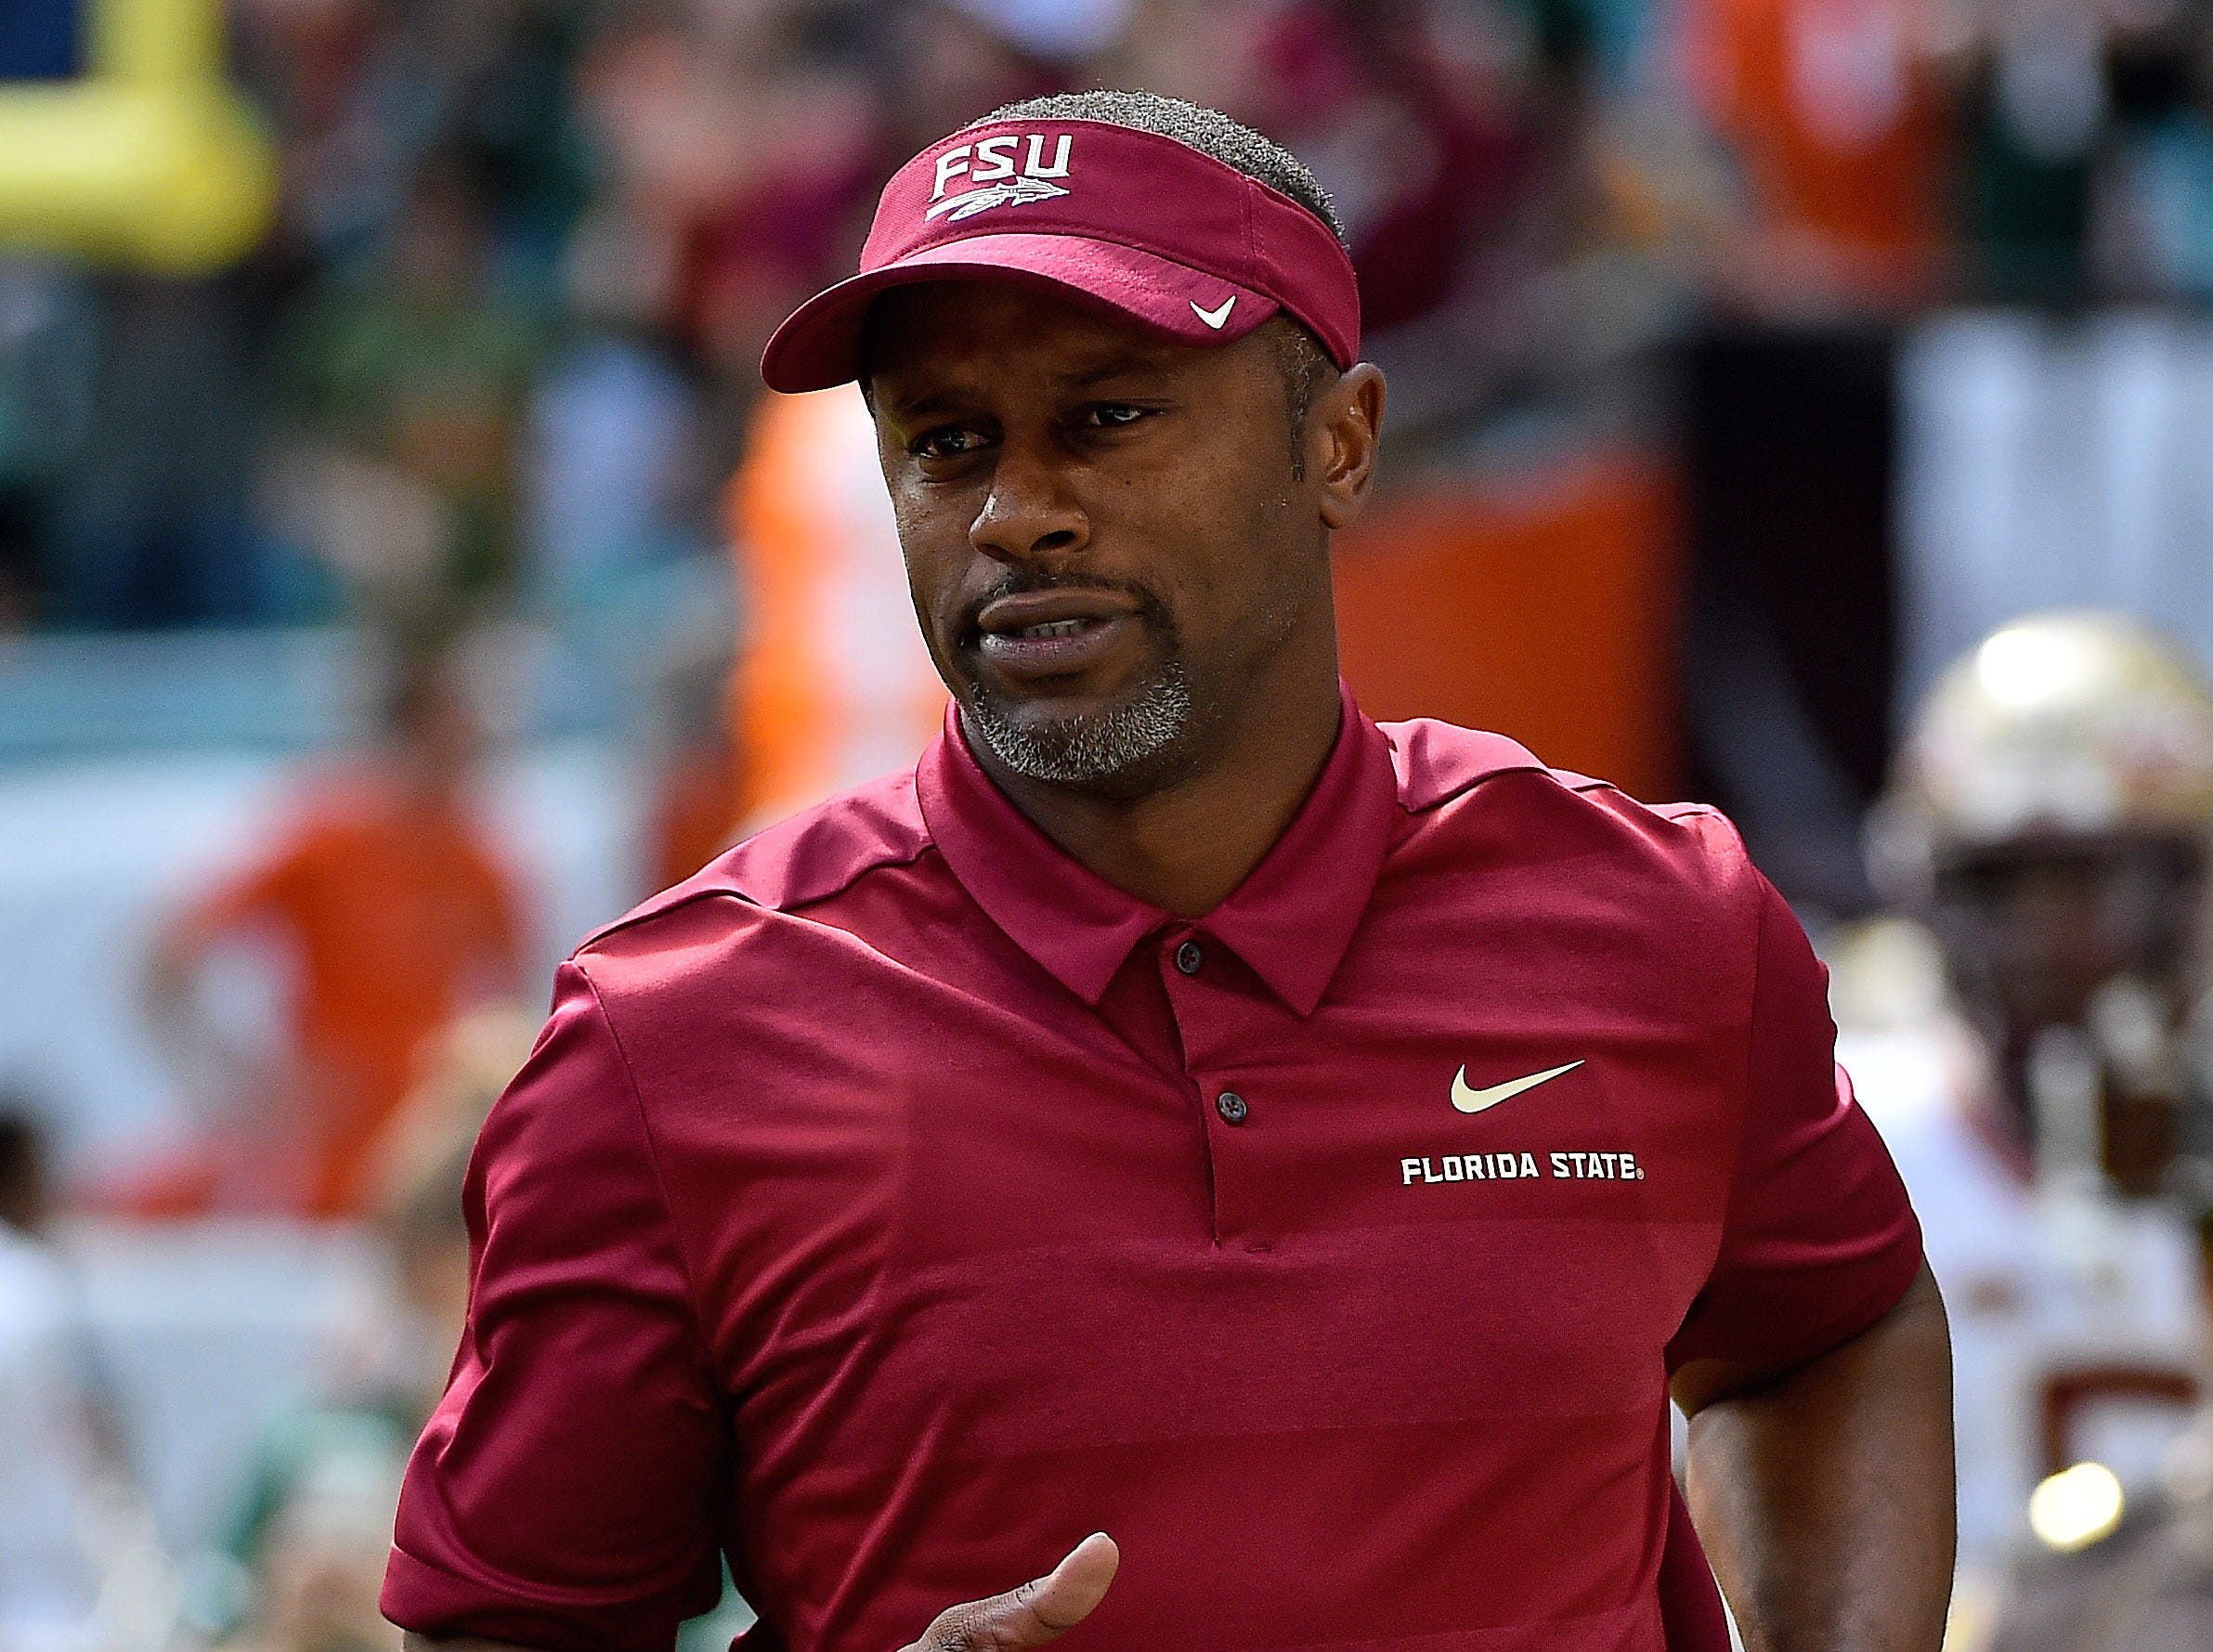 Oct 6, 2018; Miami Gardens, FL, USA; Florida State Seminoles head coach Willie Taggart runs onto the field prior top the game against the Miami Hurricanes at Hard Rock Stadium. Mandatory Credit: Jasen Vinlove-USA TODAY Sports